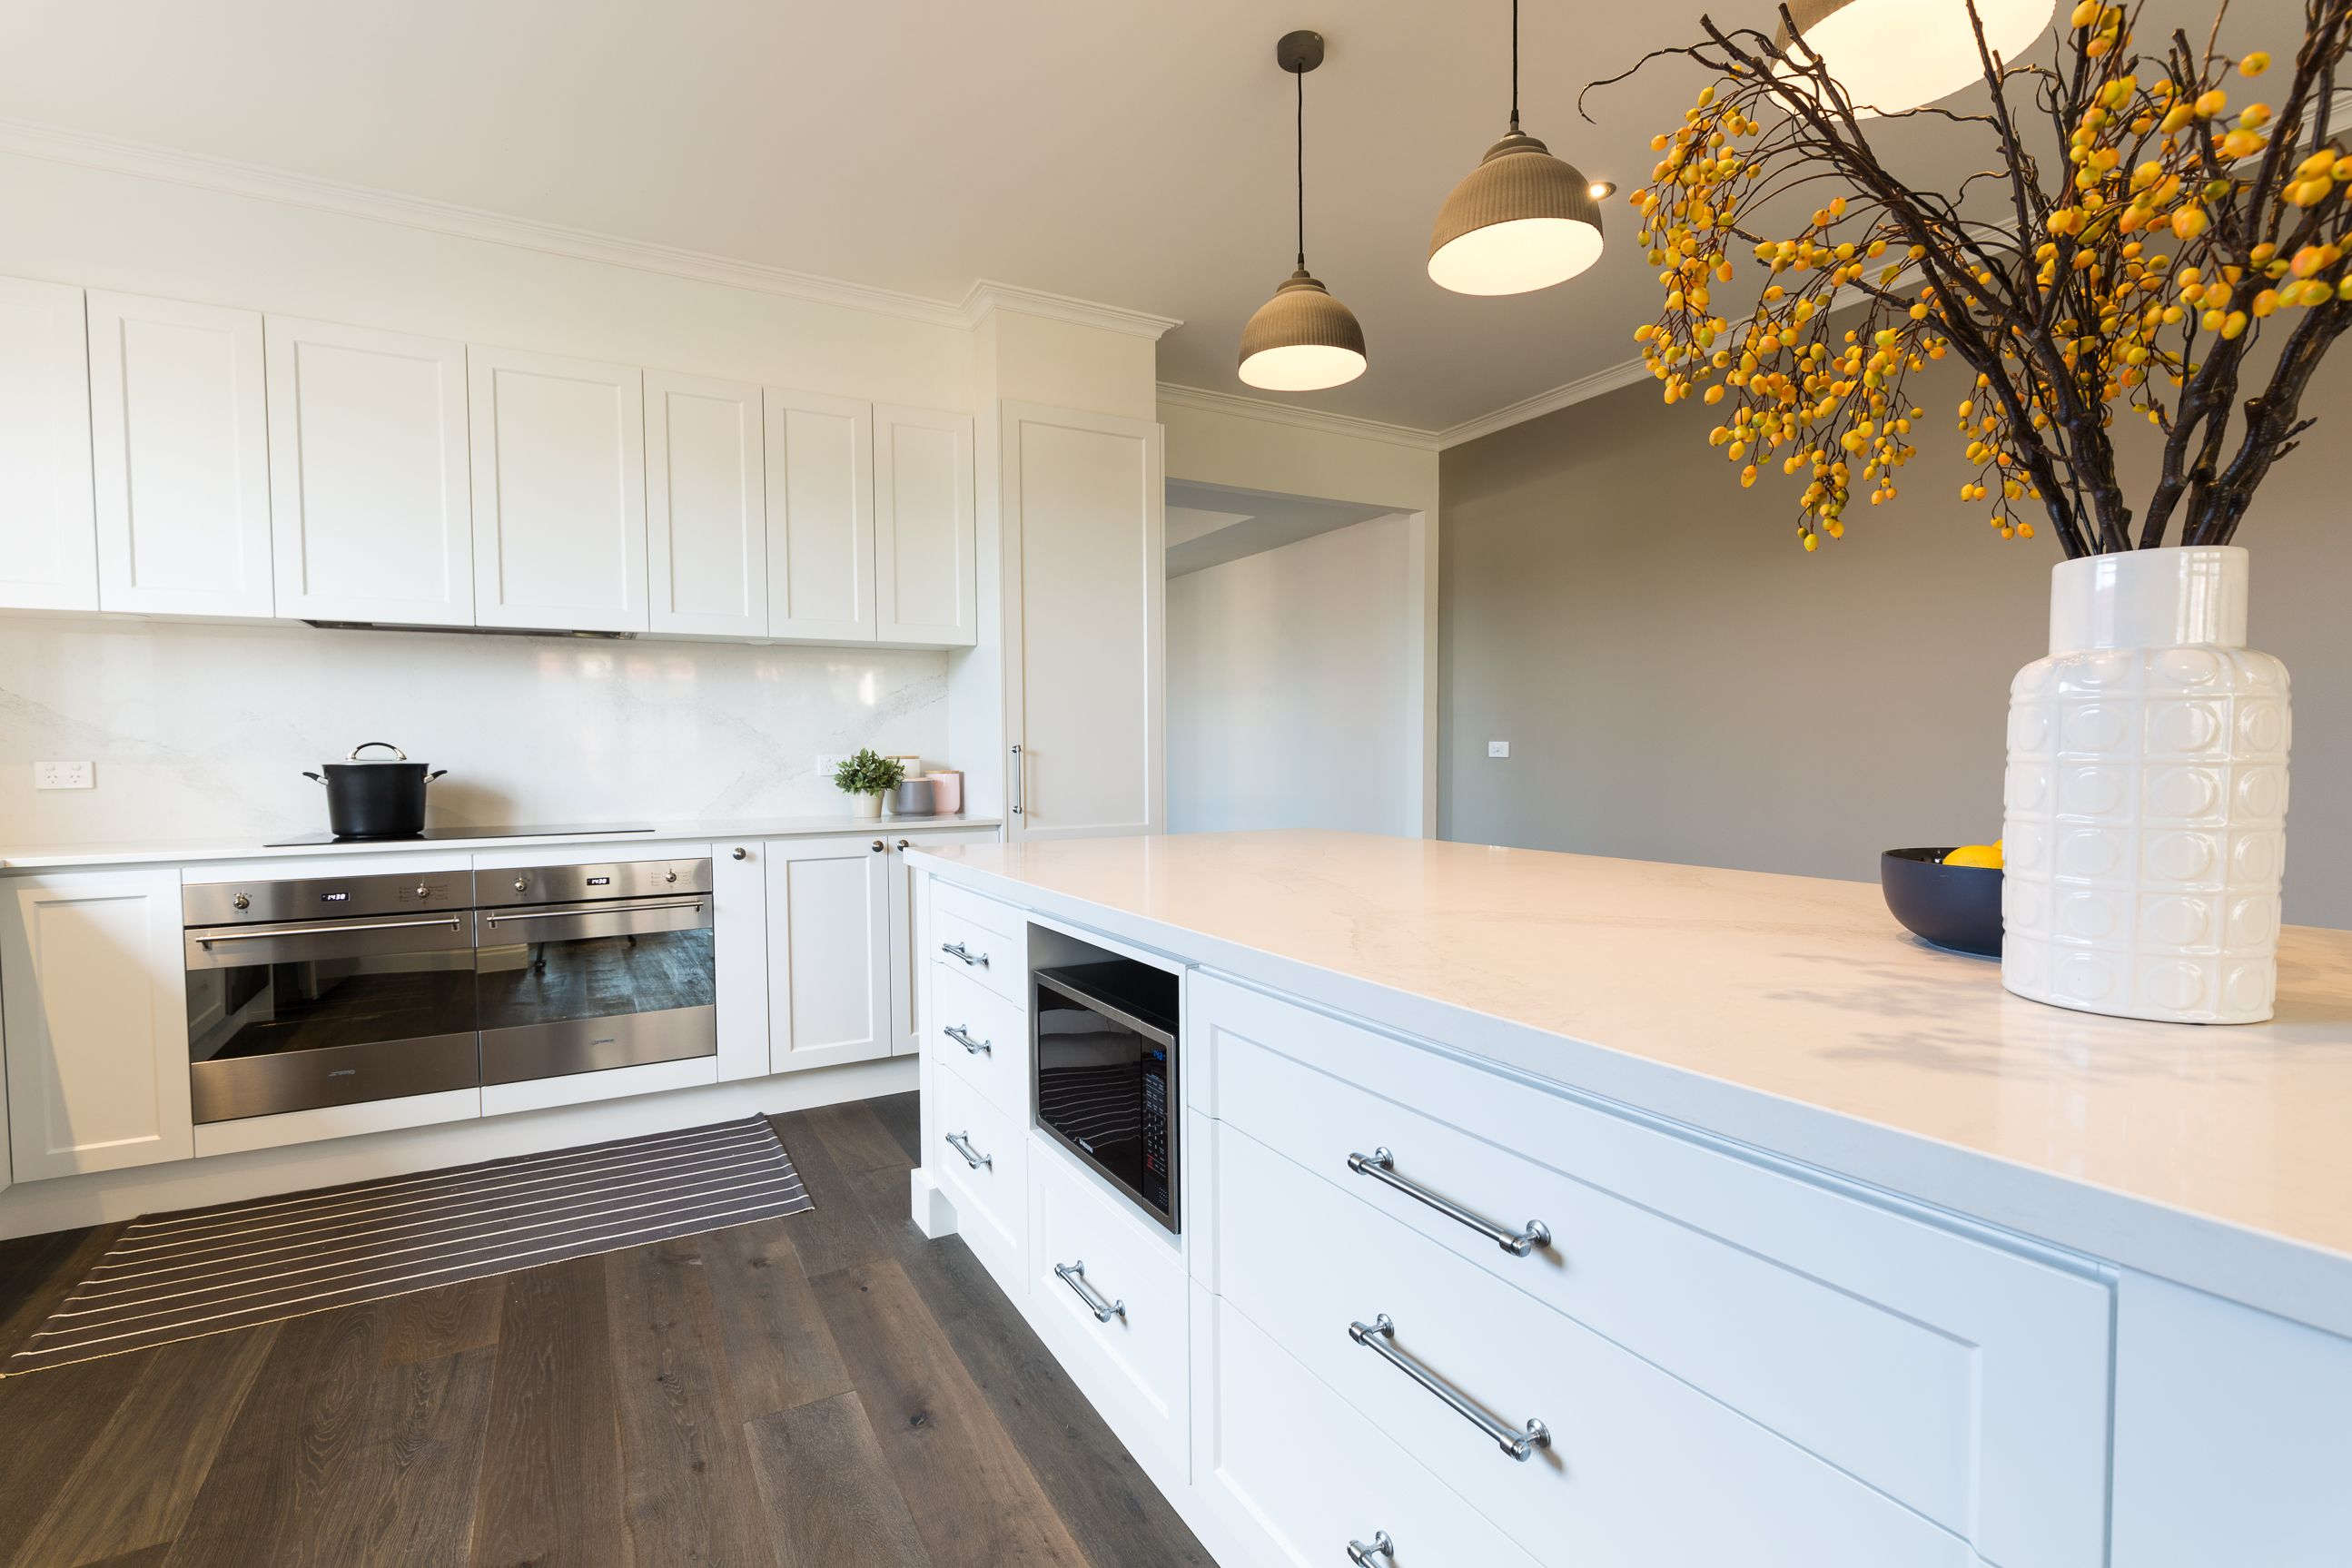 White Shaker Style Vinyl Wrap Kitchen With Stone Bench Tops And Splash Back